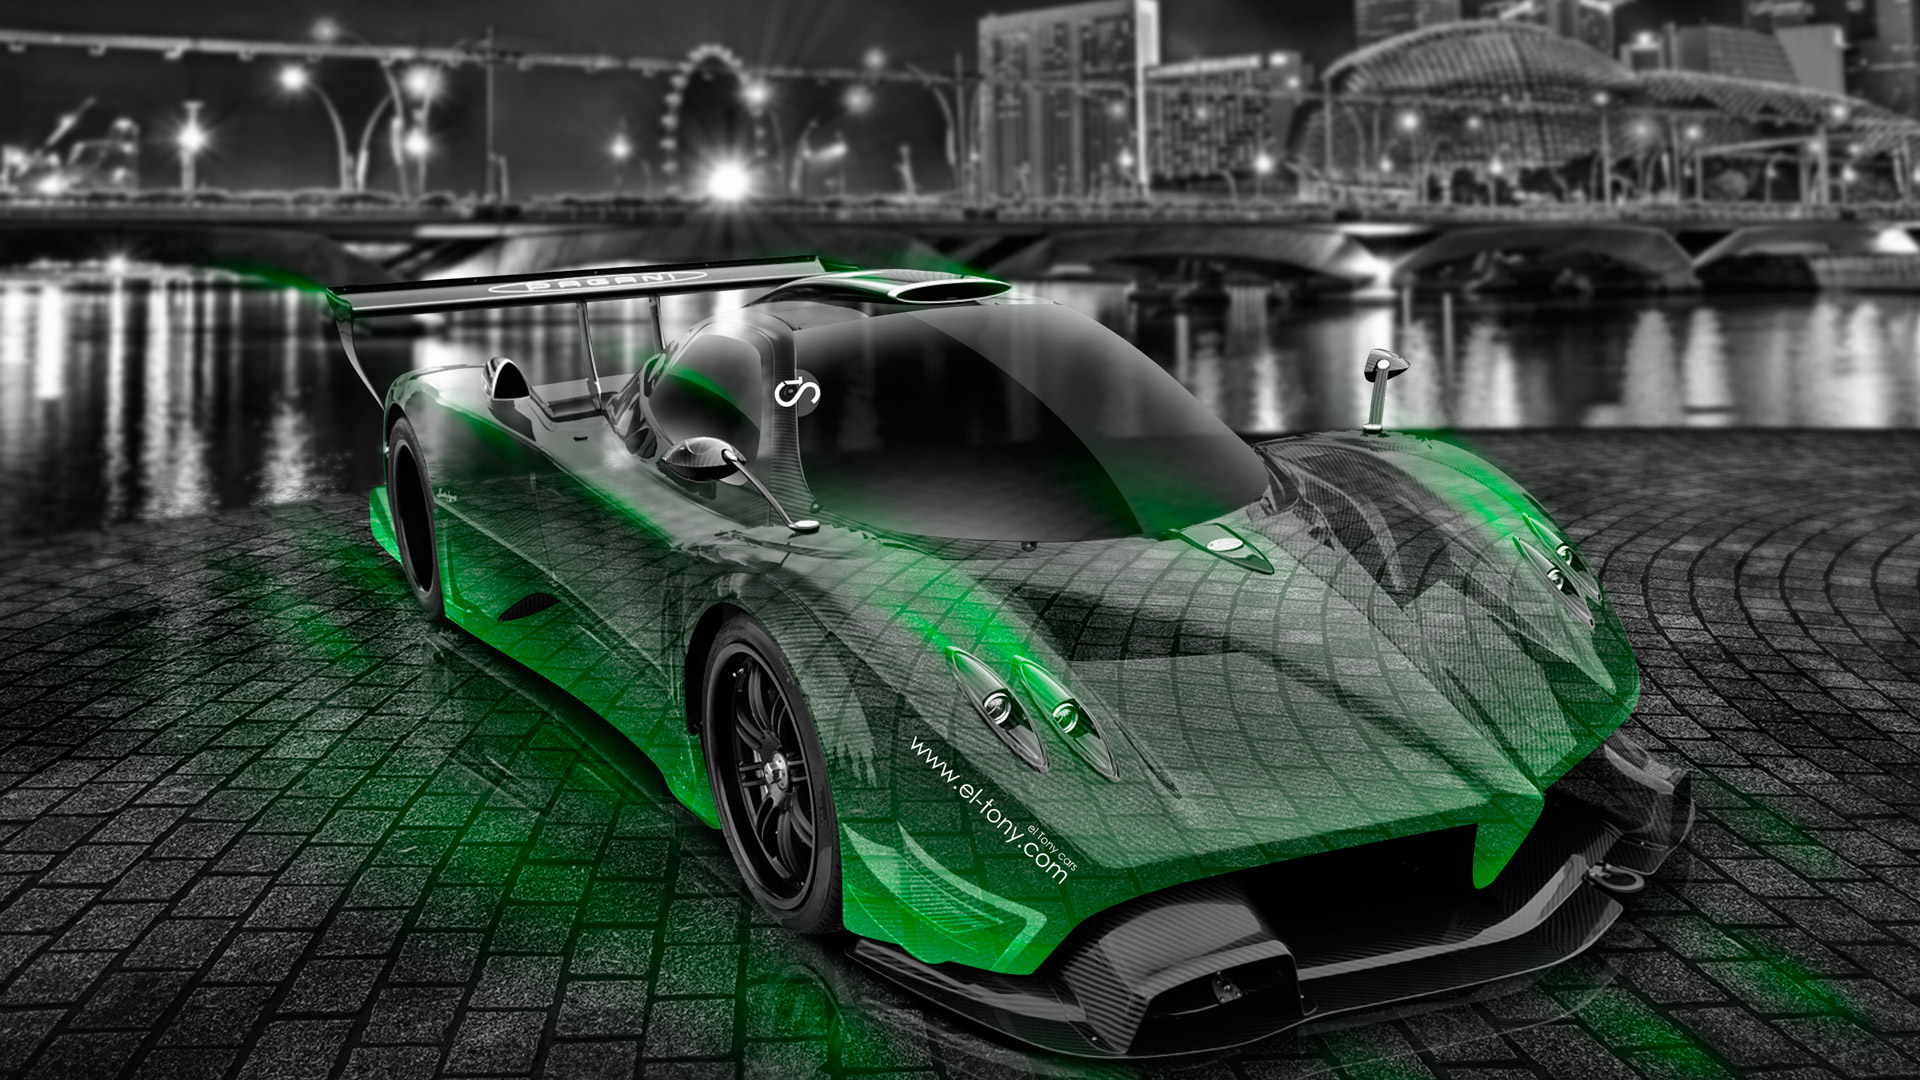 Charmant Pagani Zonda R Crystal City Car 2014 Green